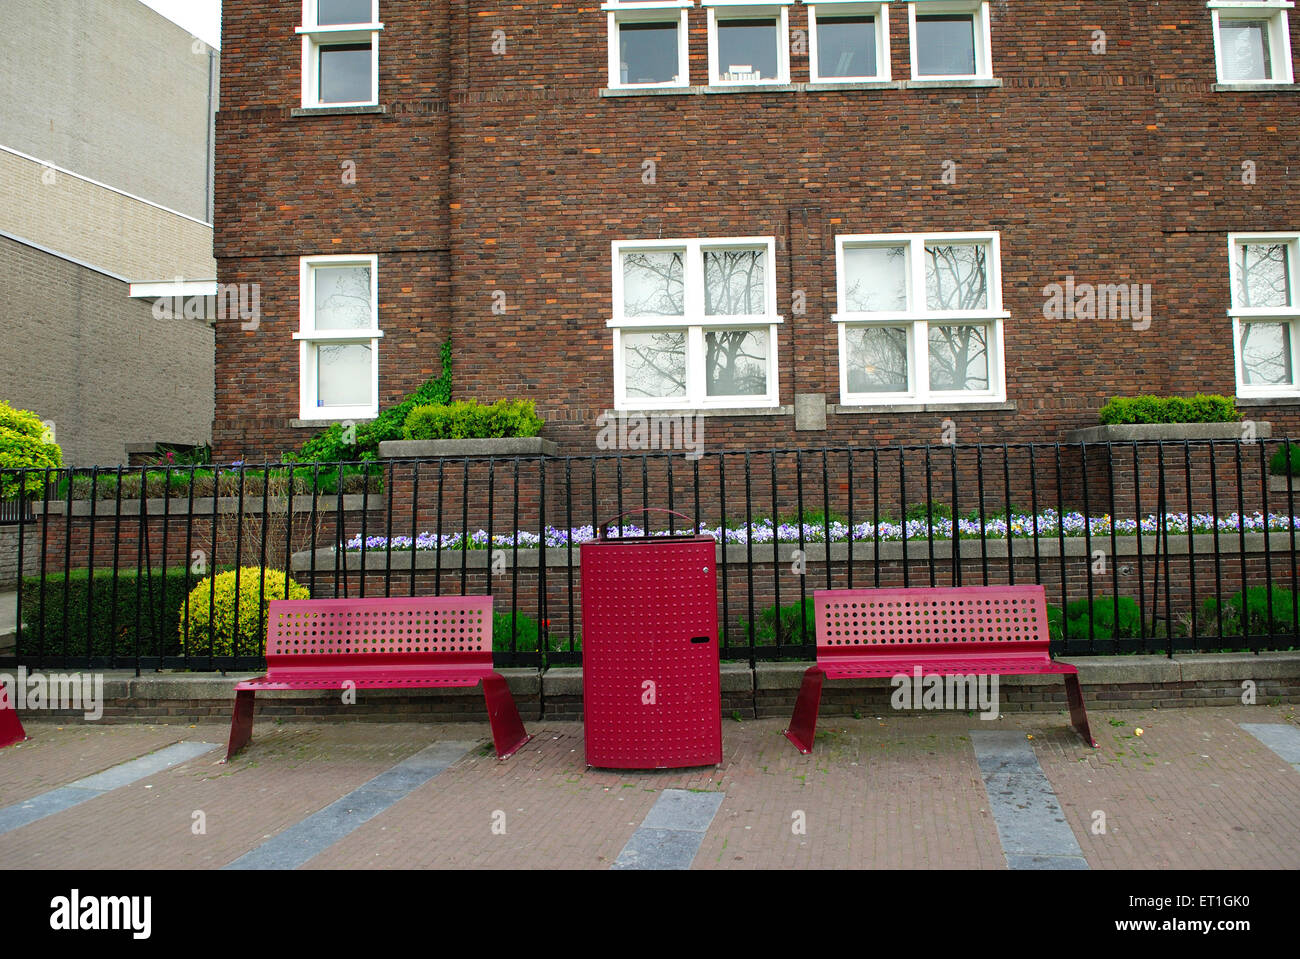 Sitting arrangement in residential area ; Germany - Stock Image